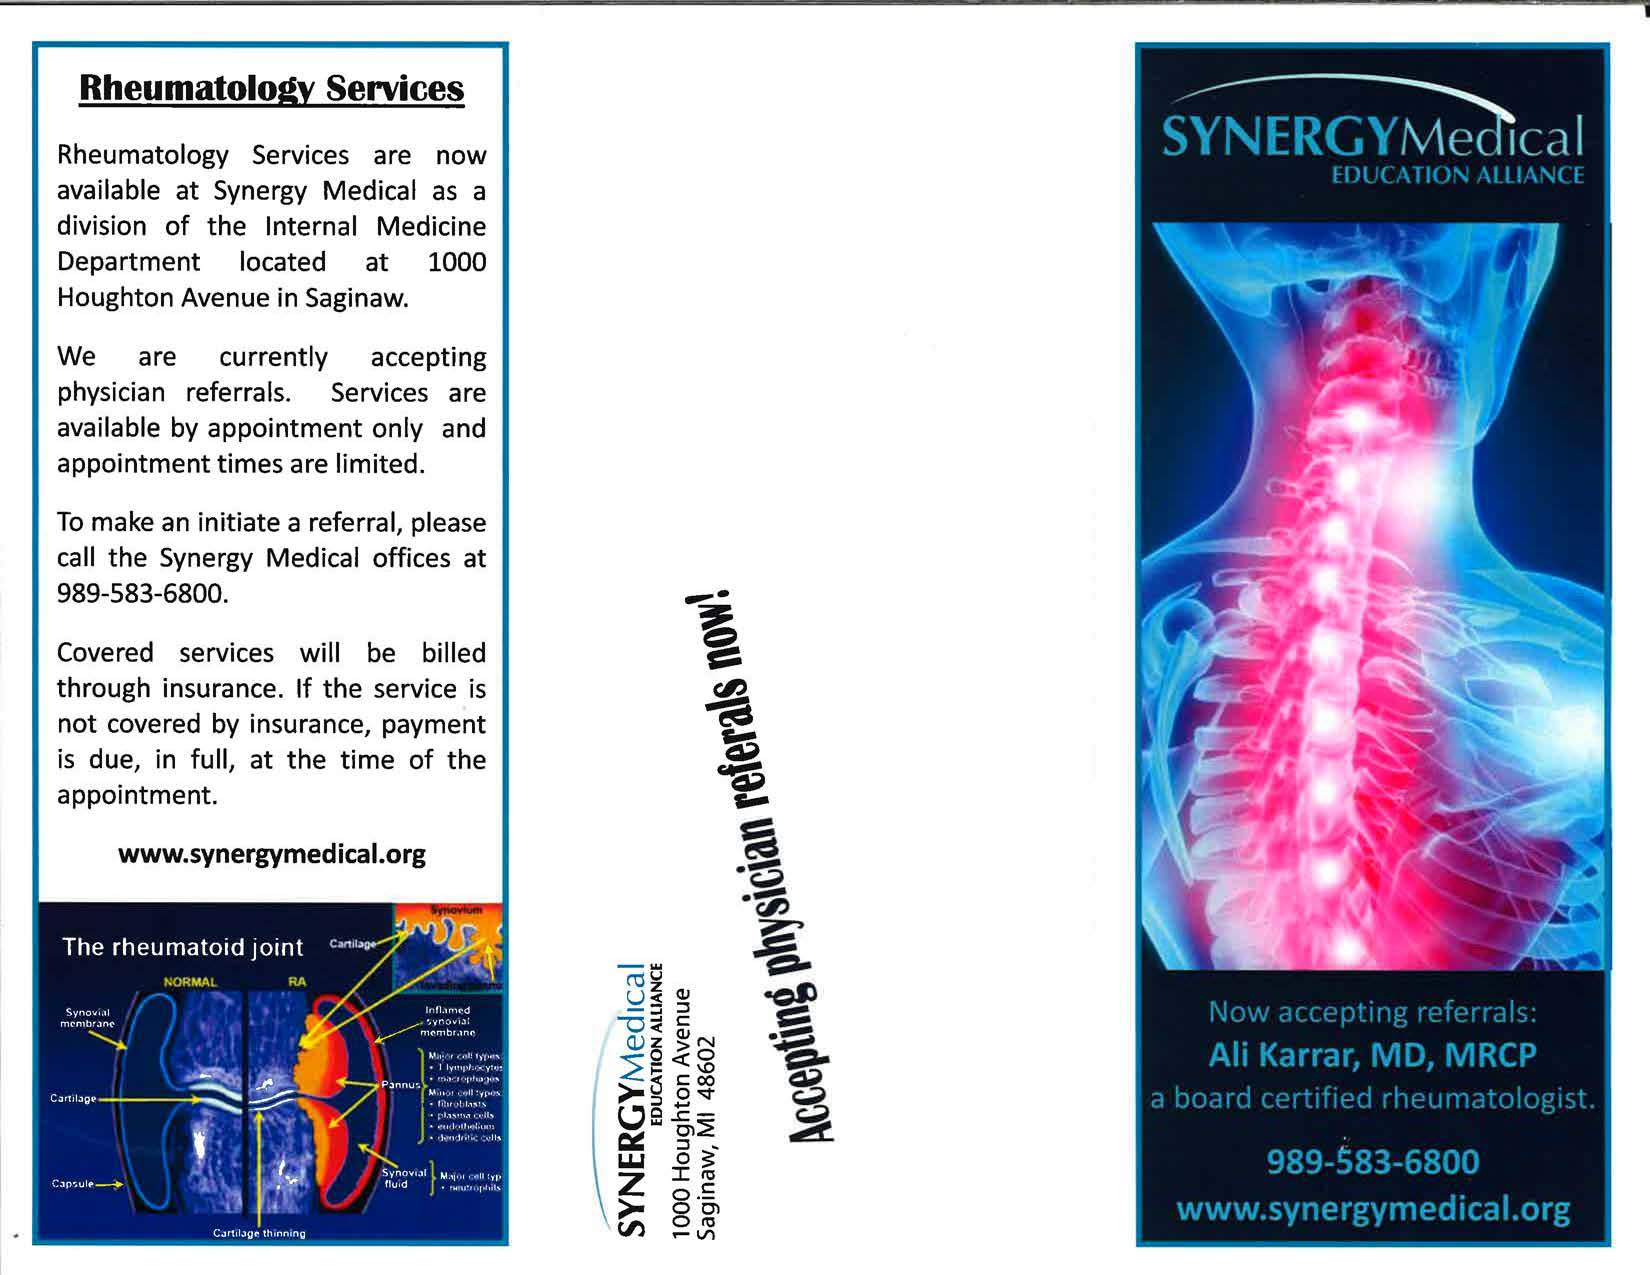 Synergy Medical Rheumatology Brochure -